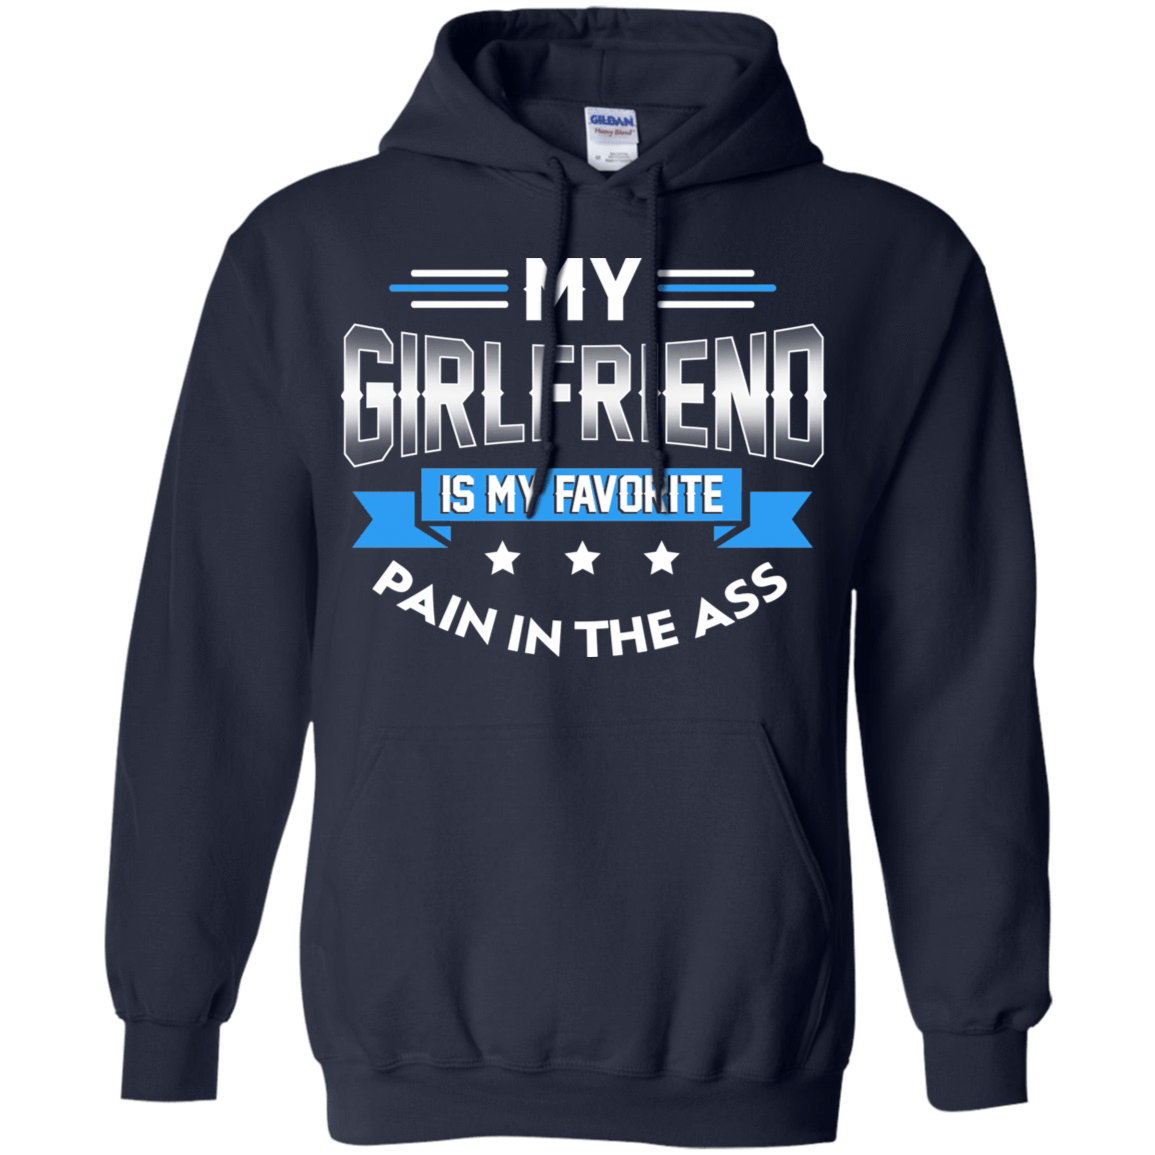 My Girlfriend Is My Favorite Pain In The Ass 541-4742-73428845-23135 - Tee Ript